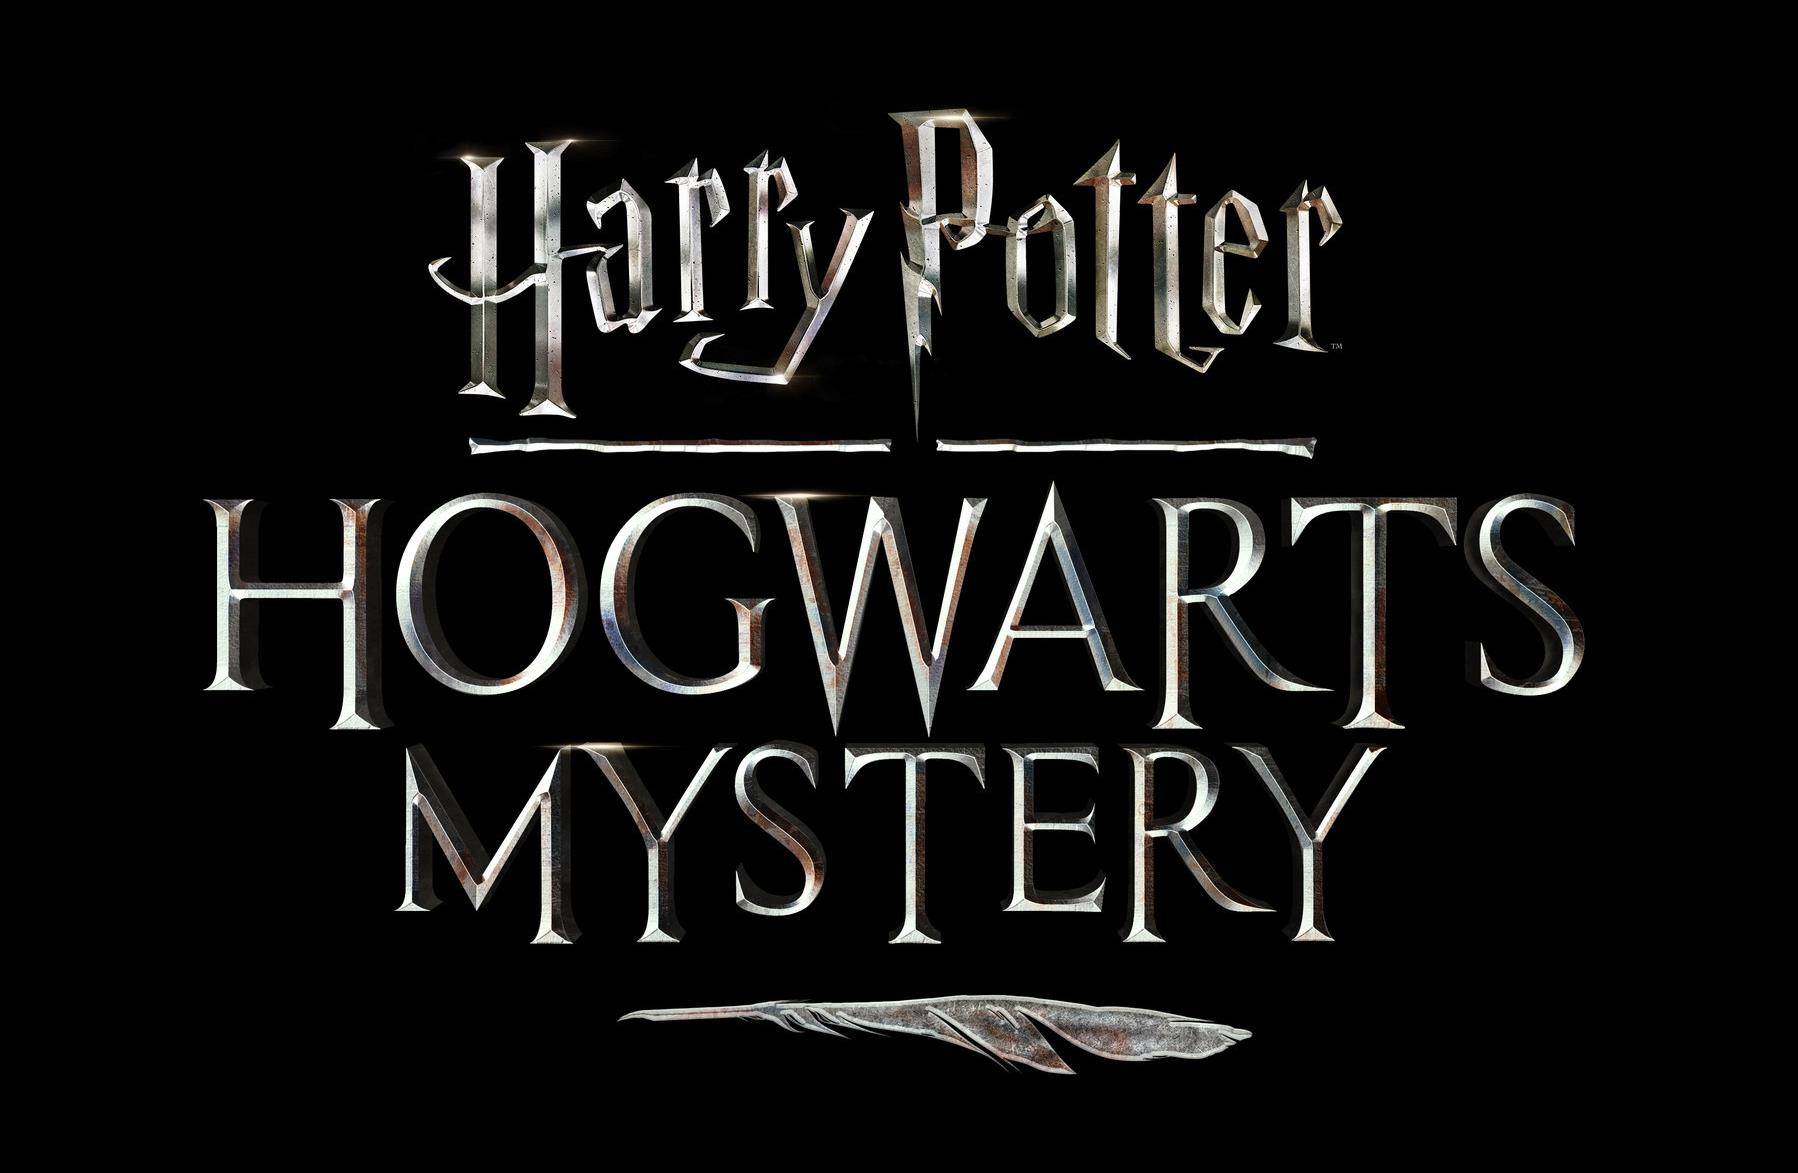 Harry Potter: Hogwarts Mystery logo